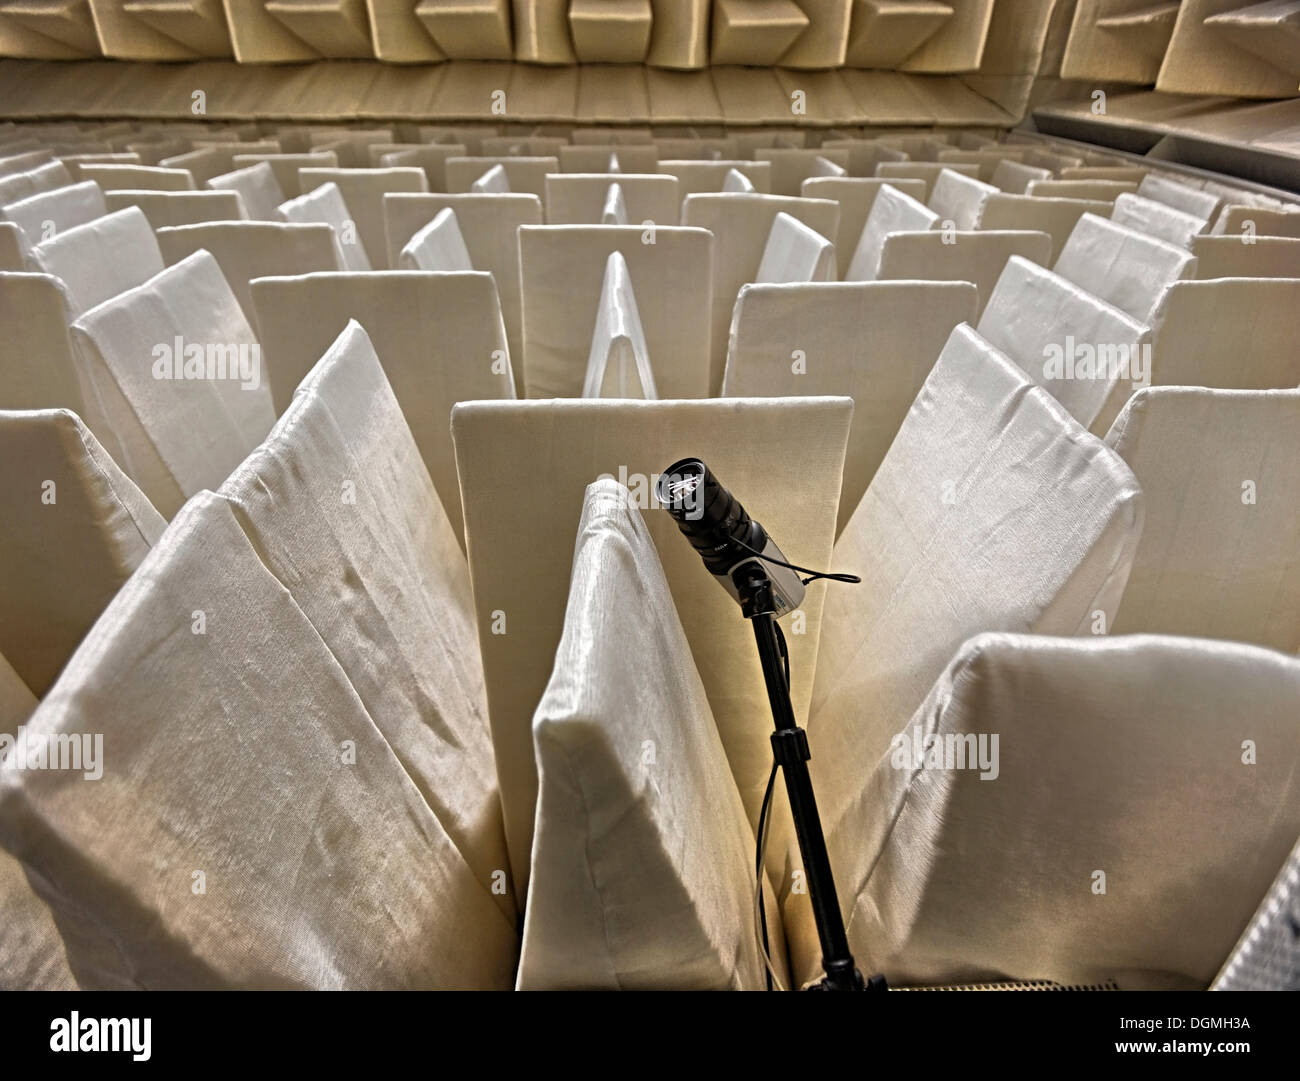 Acoustic hall of the KIT or Karlsruhe Institute of Technology, Karlsruhe, Baden-Wuerttemberg - Stock Image